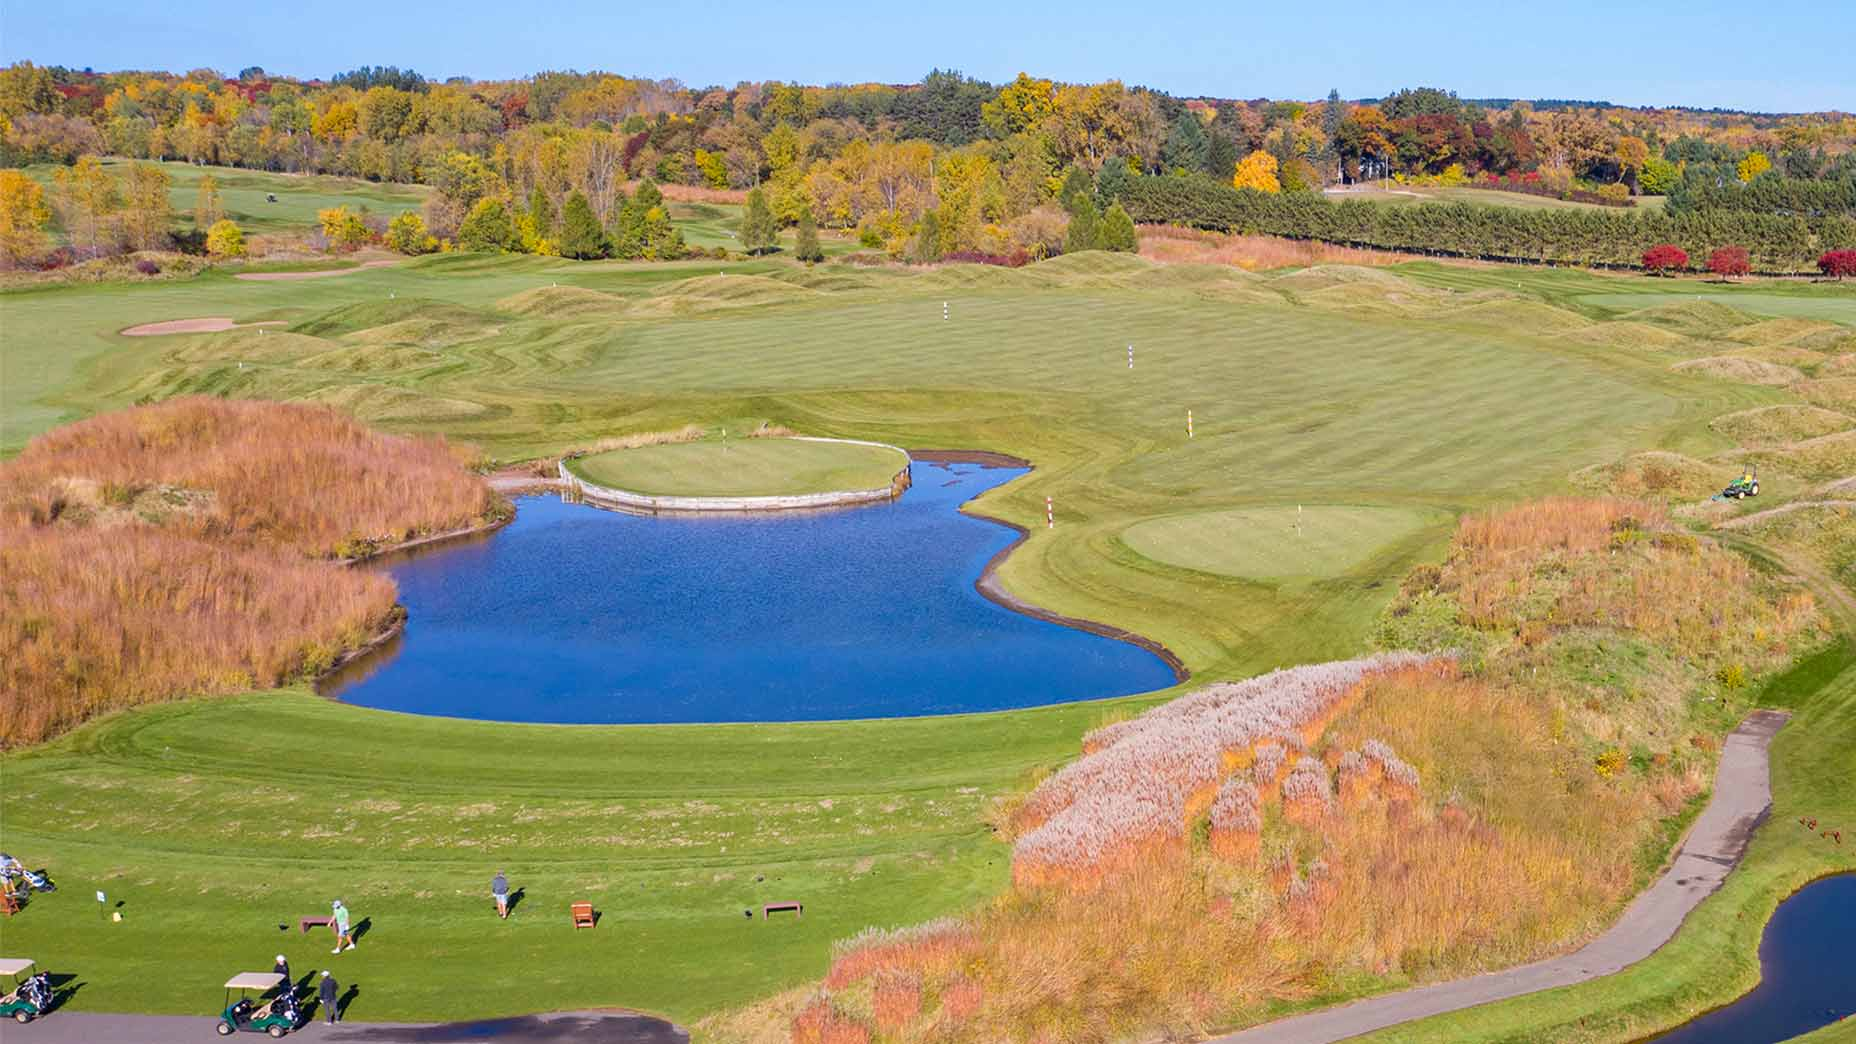 The driving range at Loggers Trail in Stillwater, Minn.